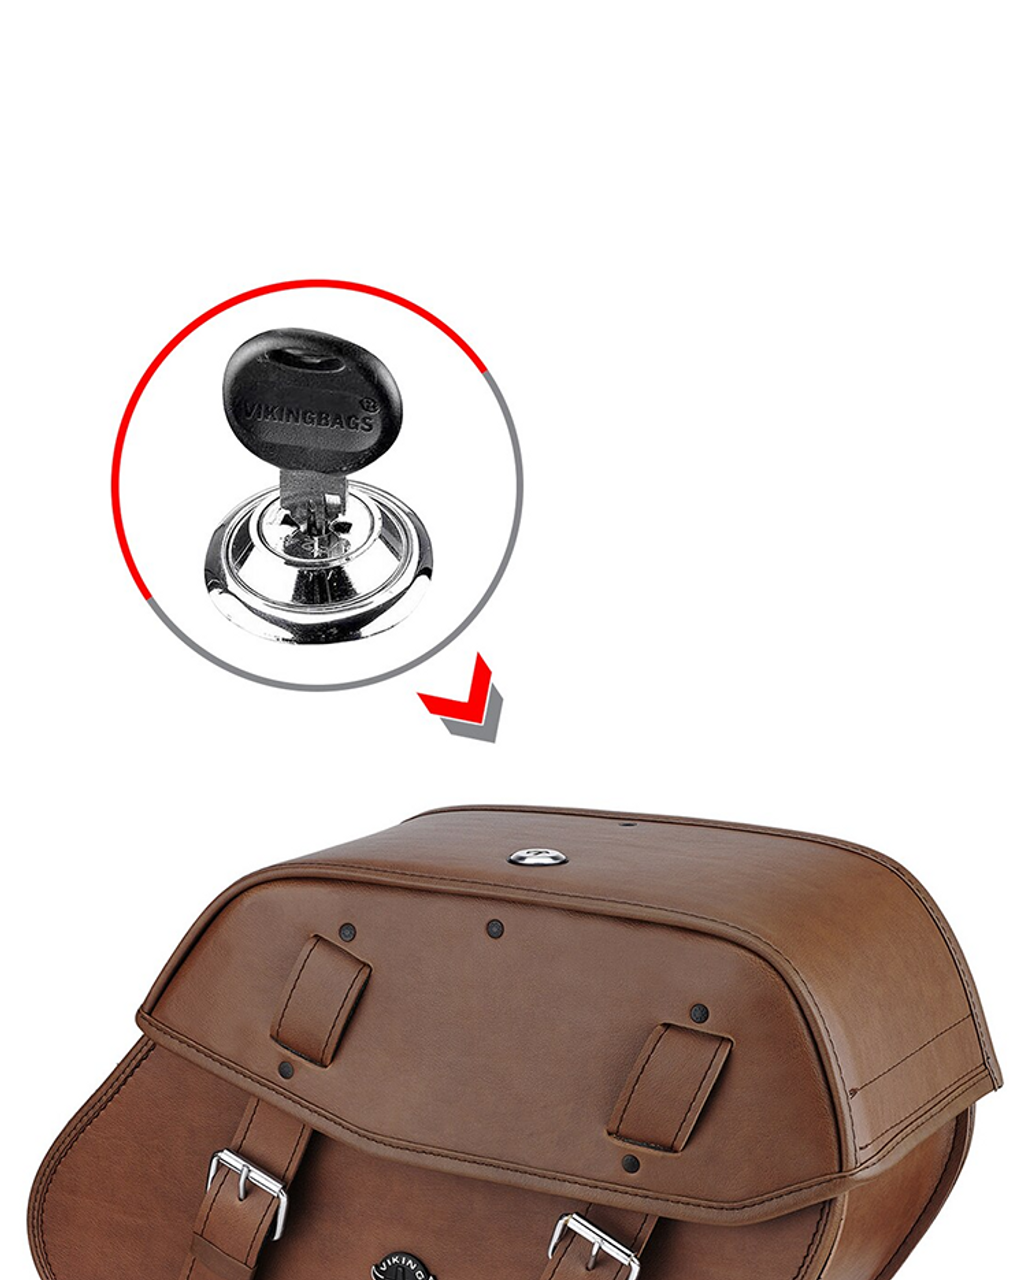 Viking Odin Brown Large Motorcycle Saddlebags For Harley Softail Breakout Key Lockable View